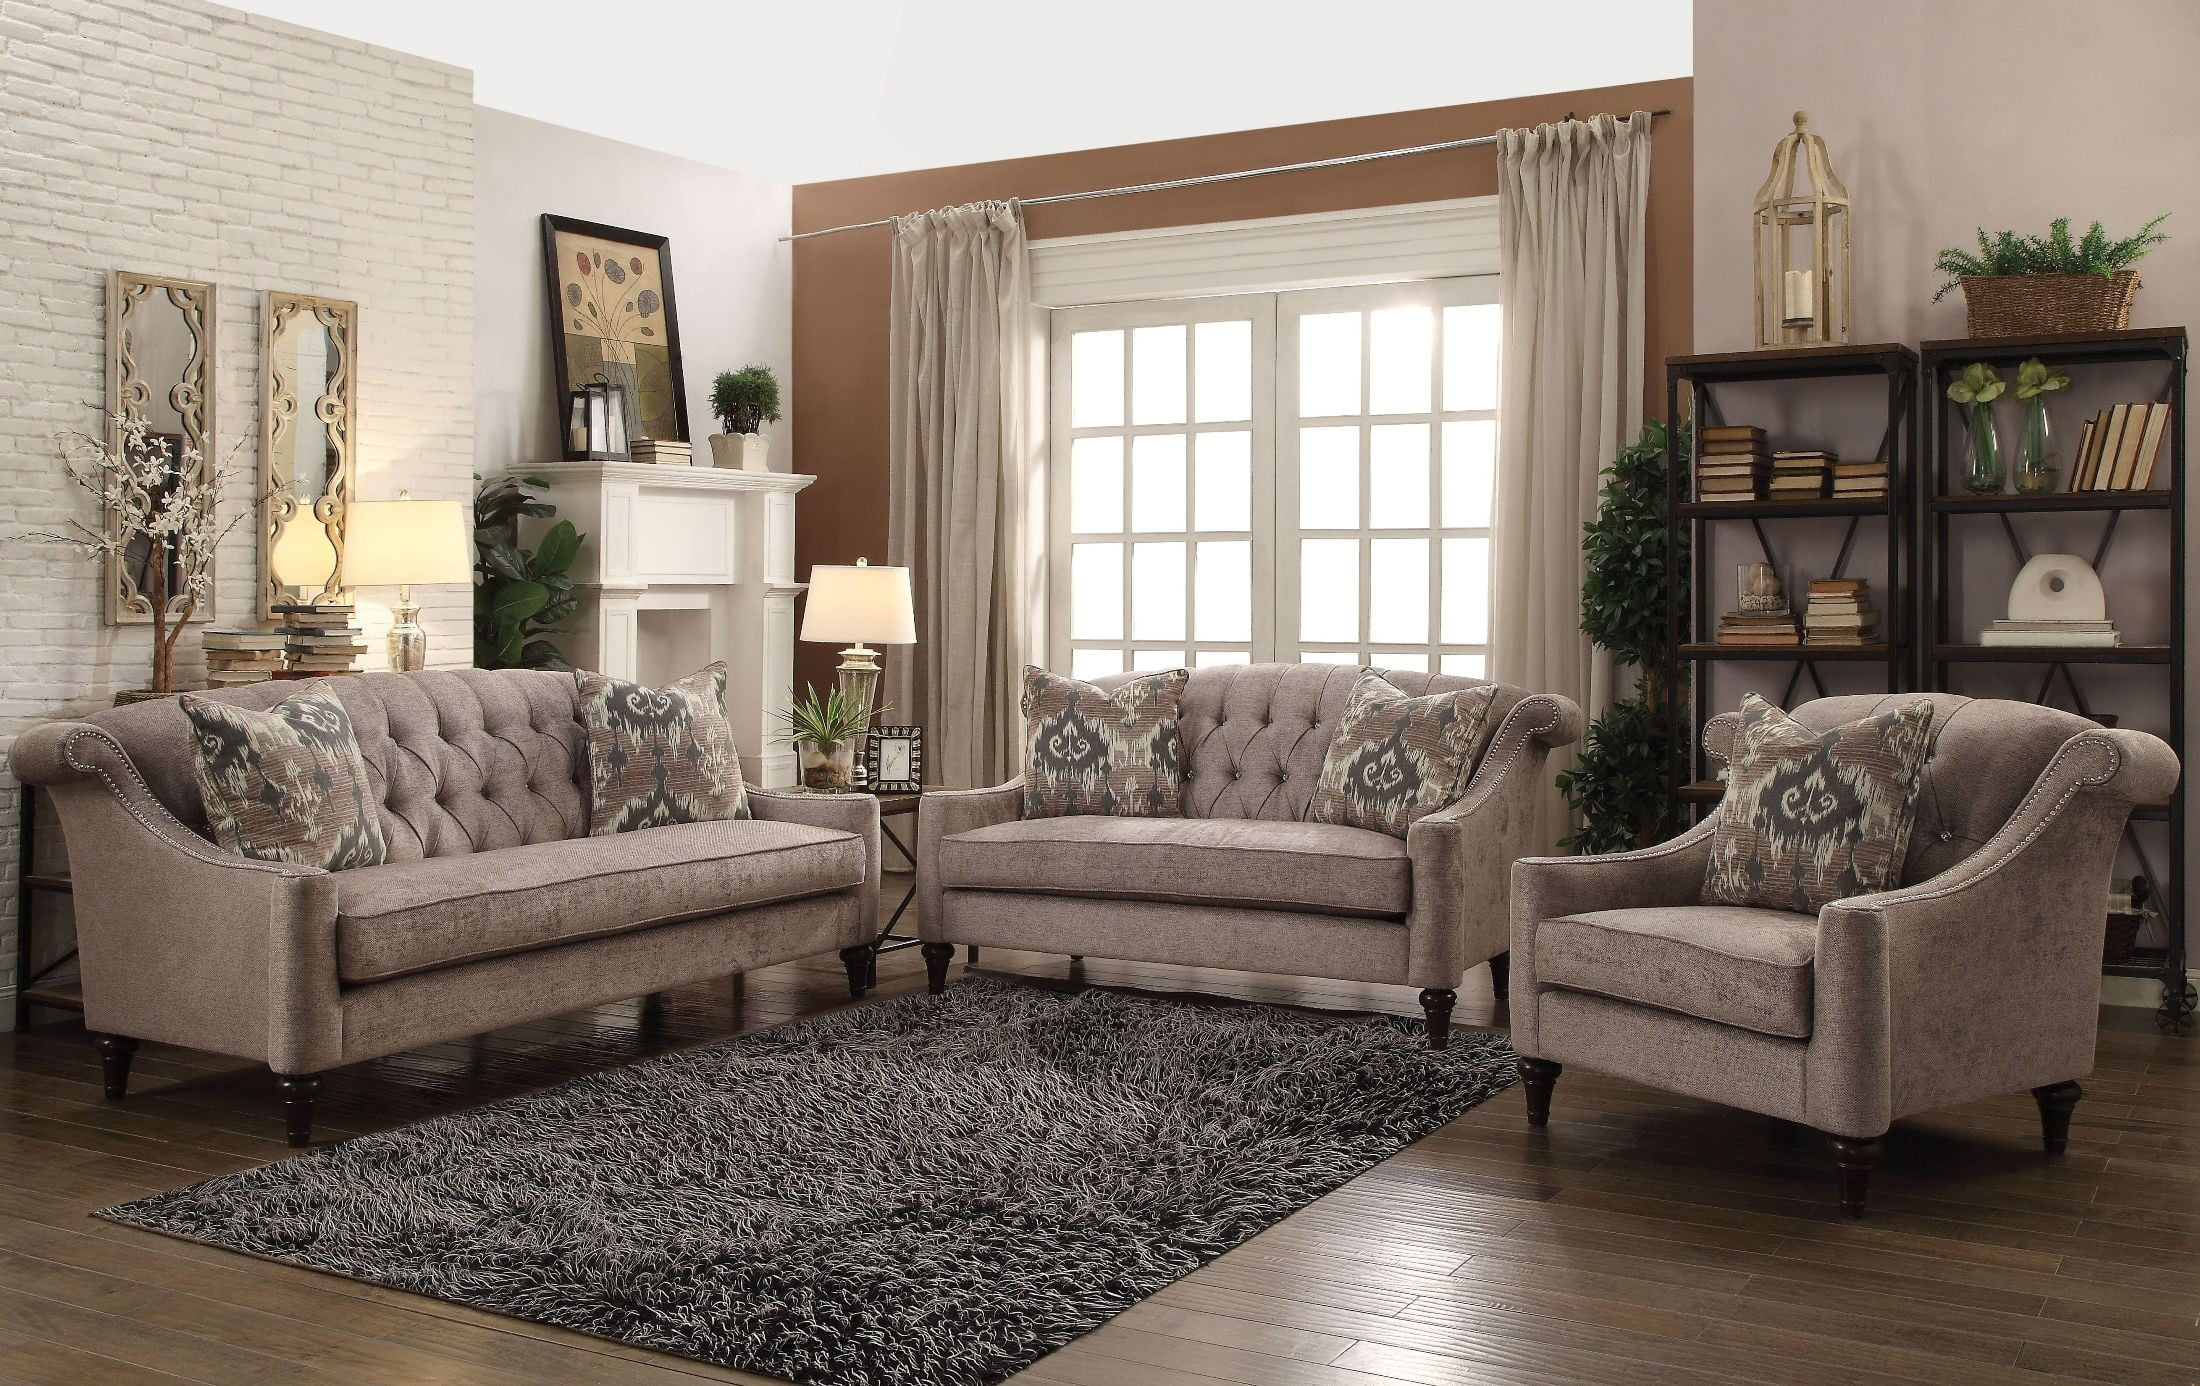 chairs furn beige modern for furniture colors room ideas paint livings with set living